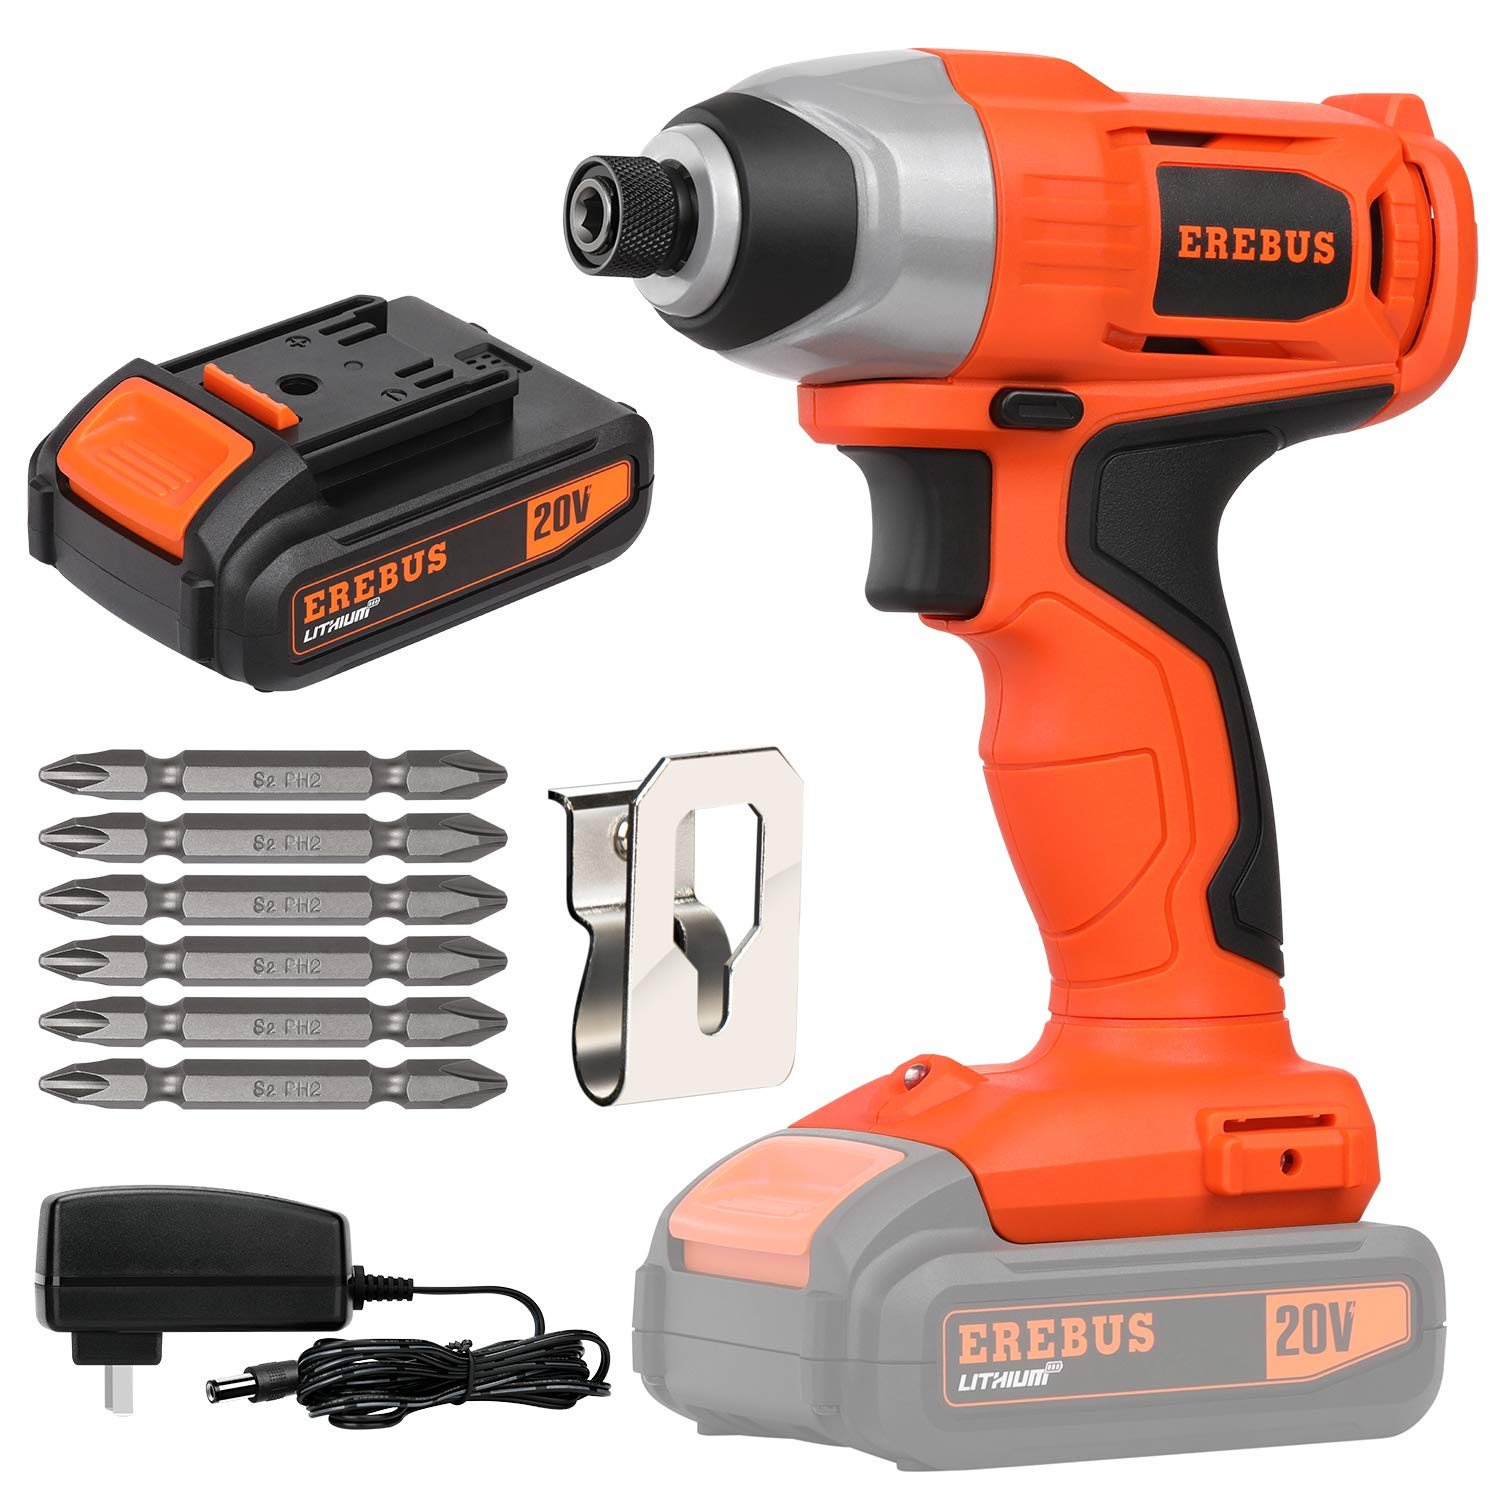 "EREBUS 20V Lithium Ion 1/4"" Hex Cordless Impact Driver w/ 1.3Ah Battery and Charger (95307)"